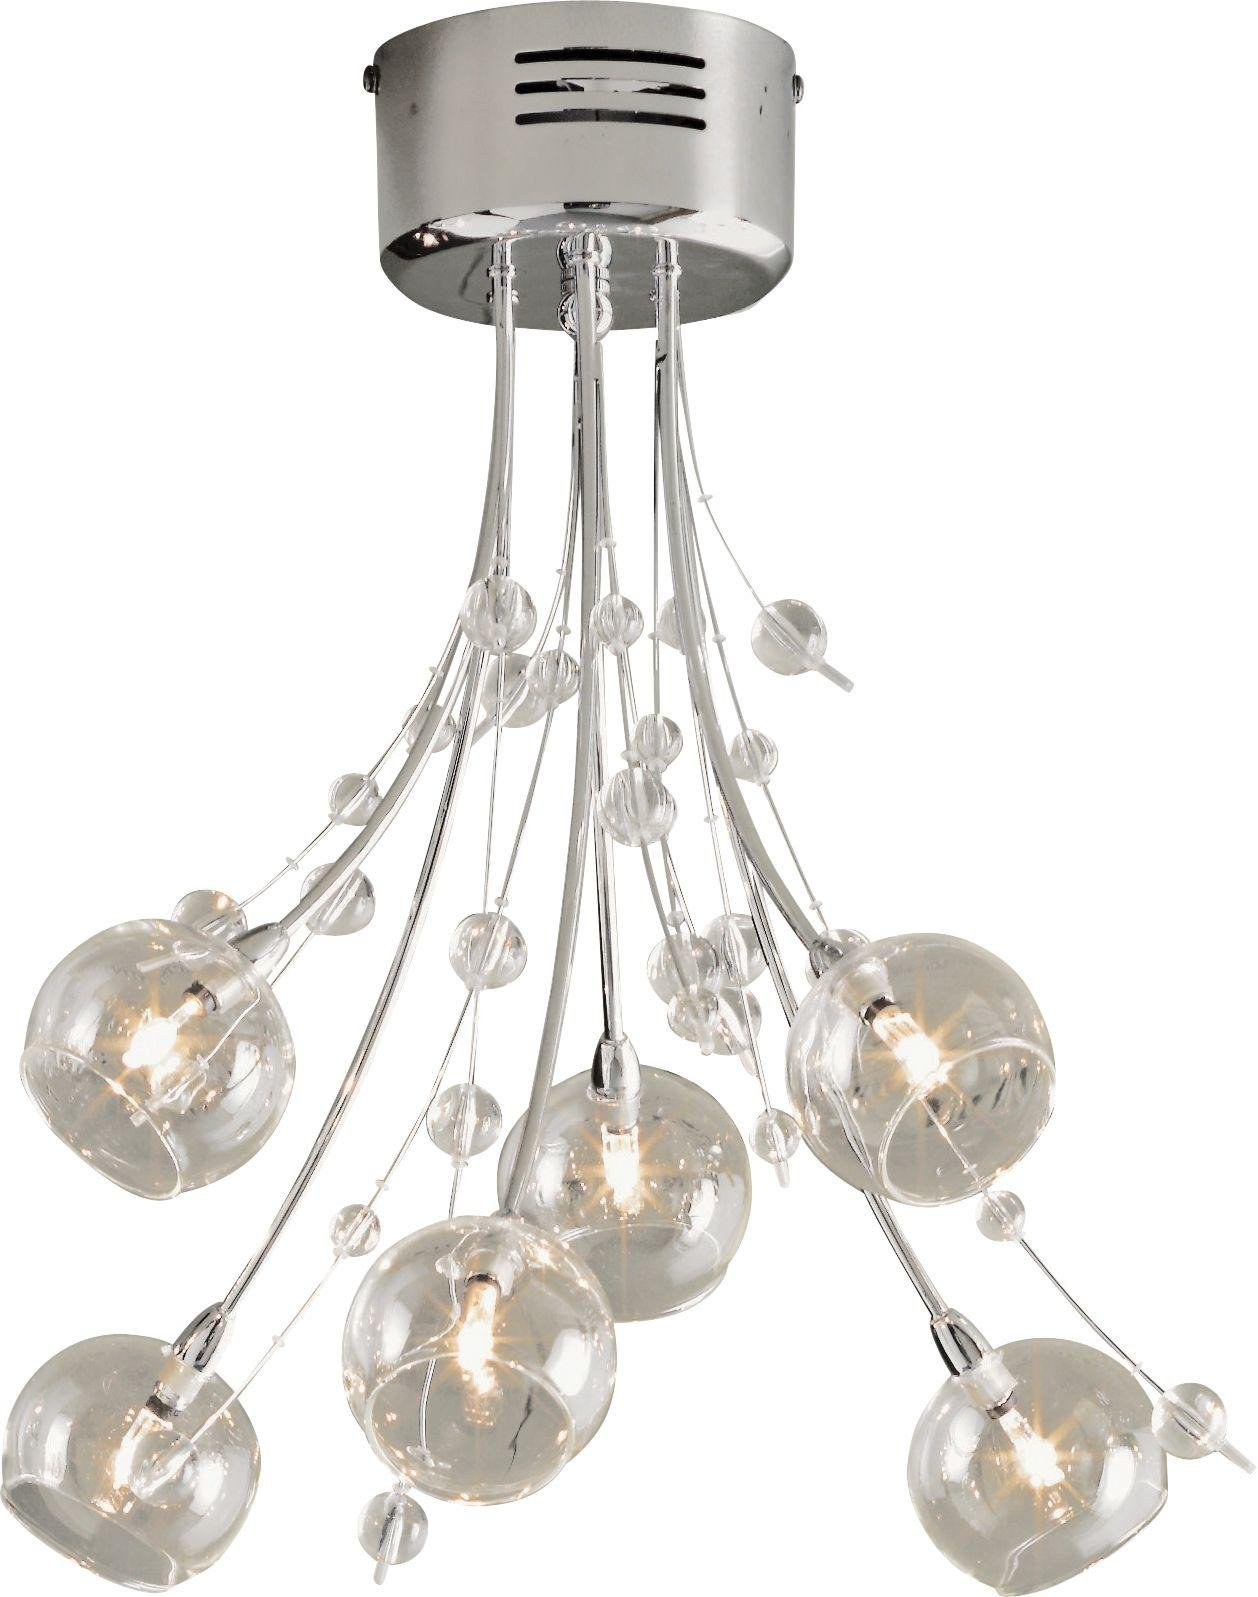 Argos Home Sophie 6 Light Ceiling Fitting - Chrome